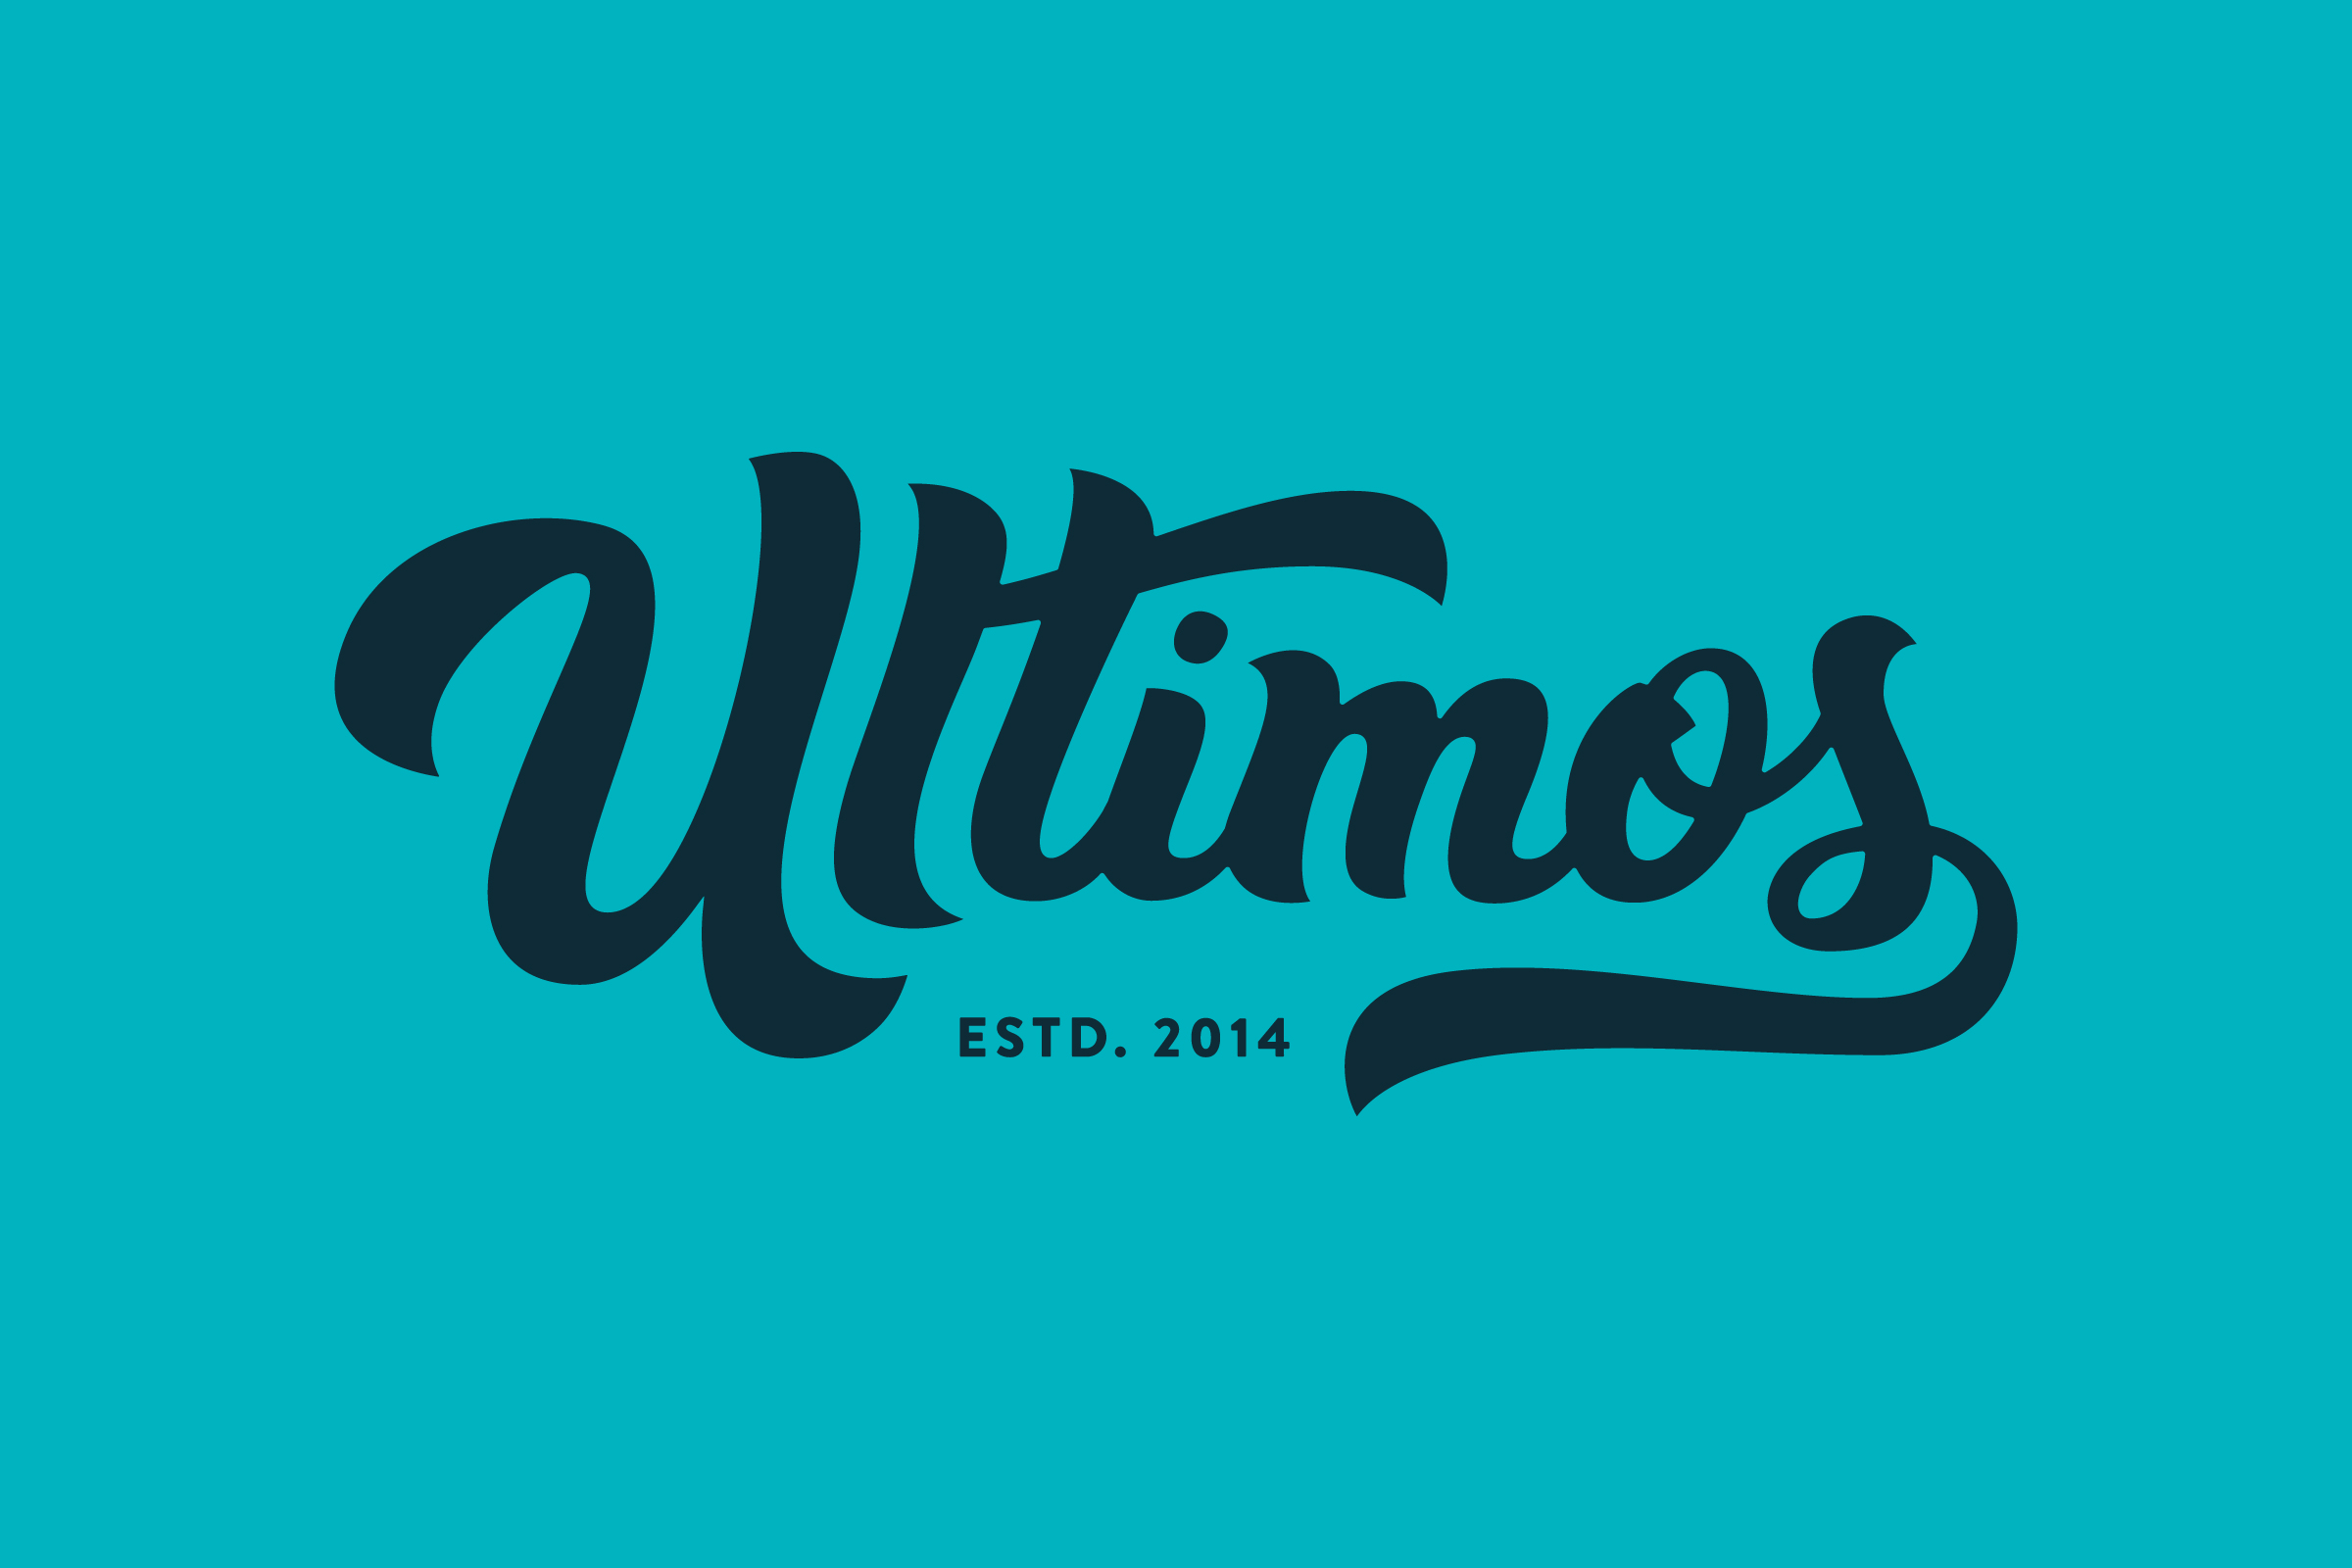 ultimos-logo-lettering-full-color-reversed